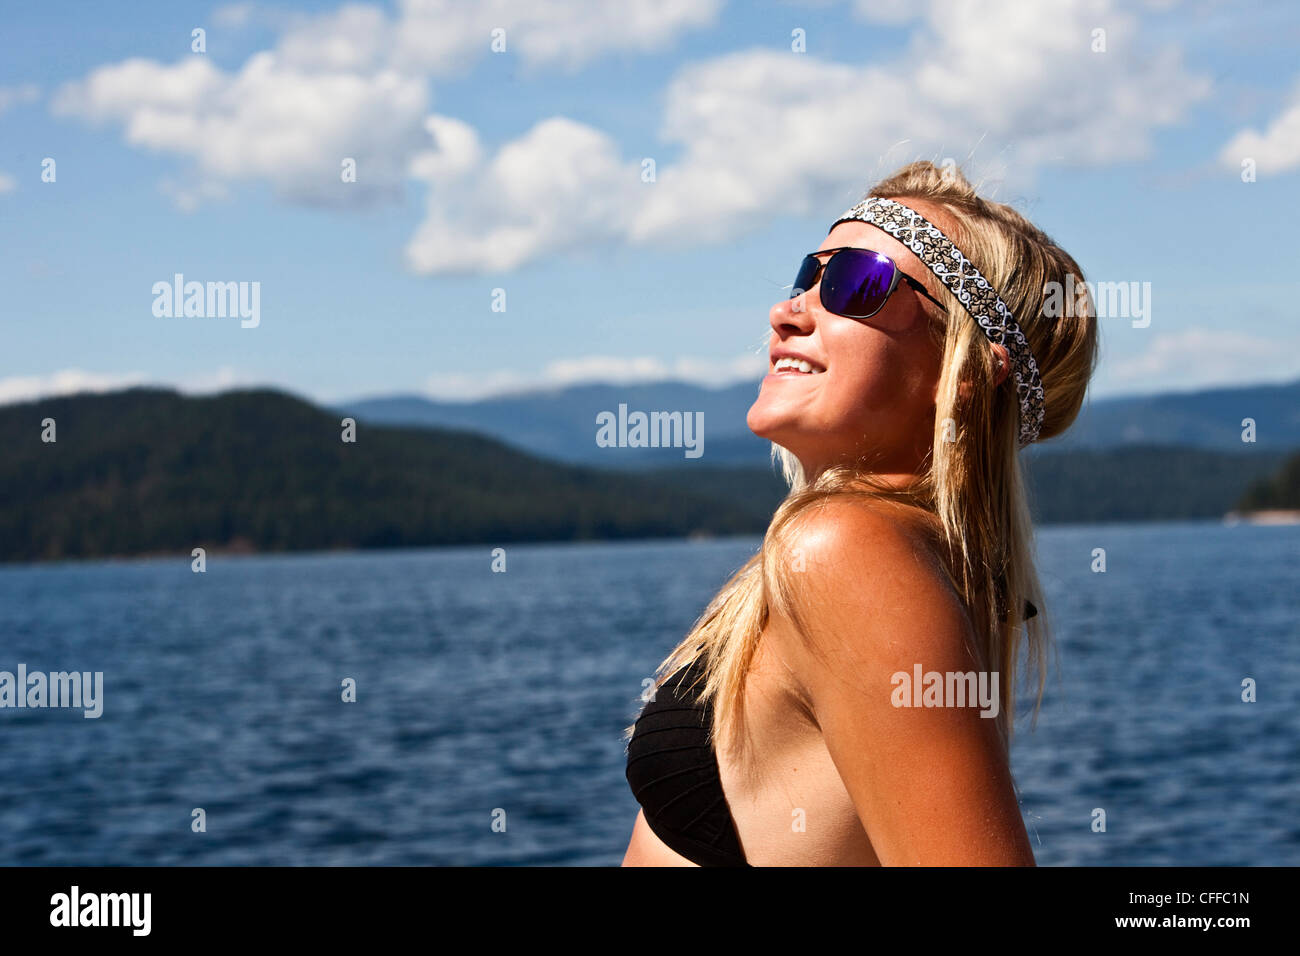 A athletic young woman smiles while subathing next to a lake in Idaho. - Stock Image